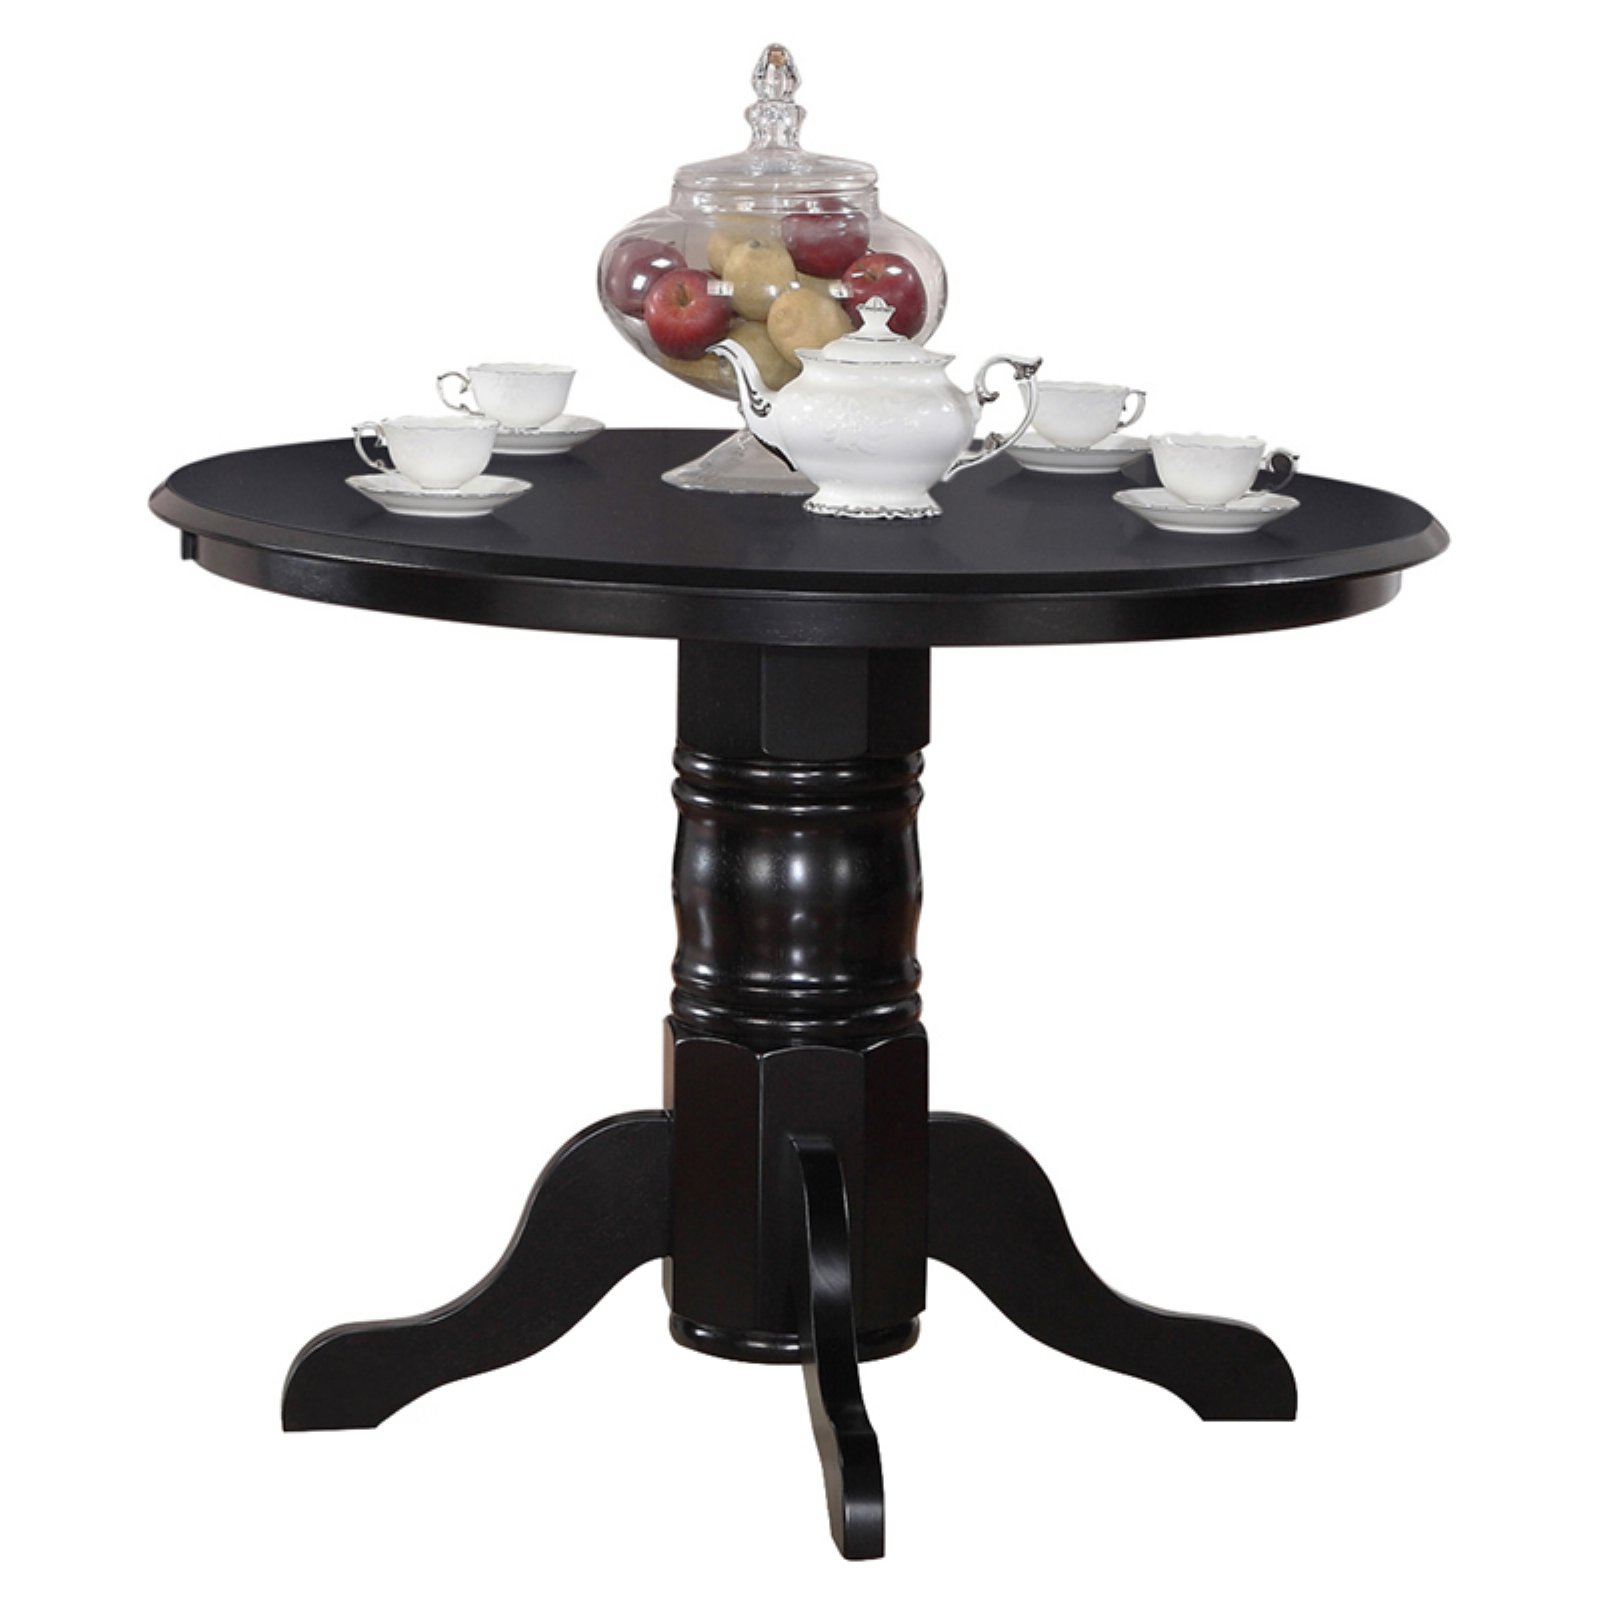 East West Furniture Shelton 42 Inch Round Pedestal Dining Table